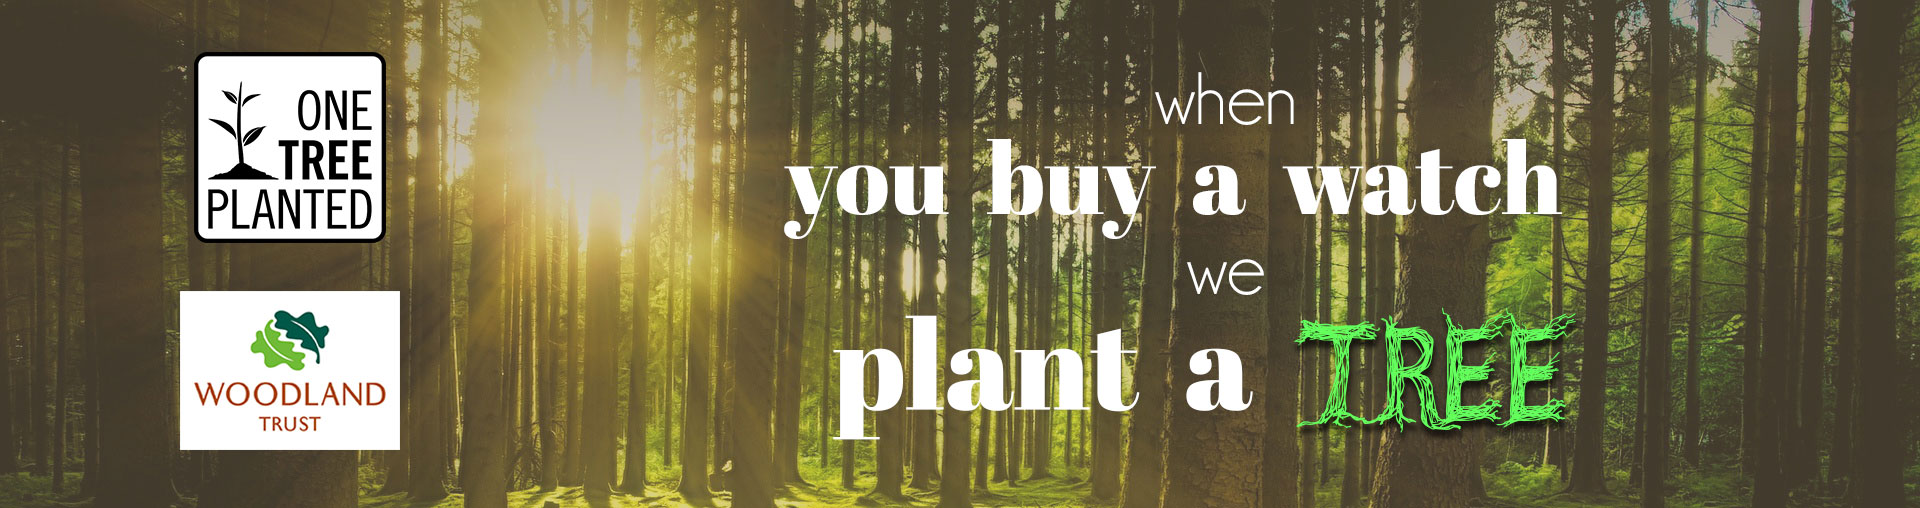 buy a wooden watch plant a tree